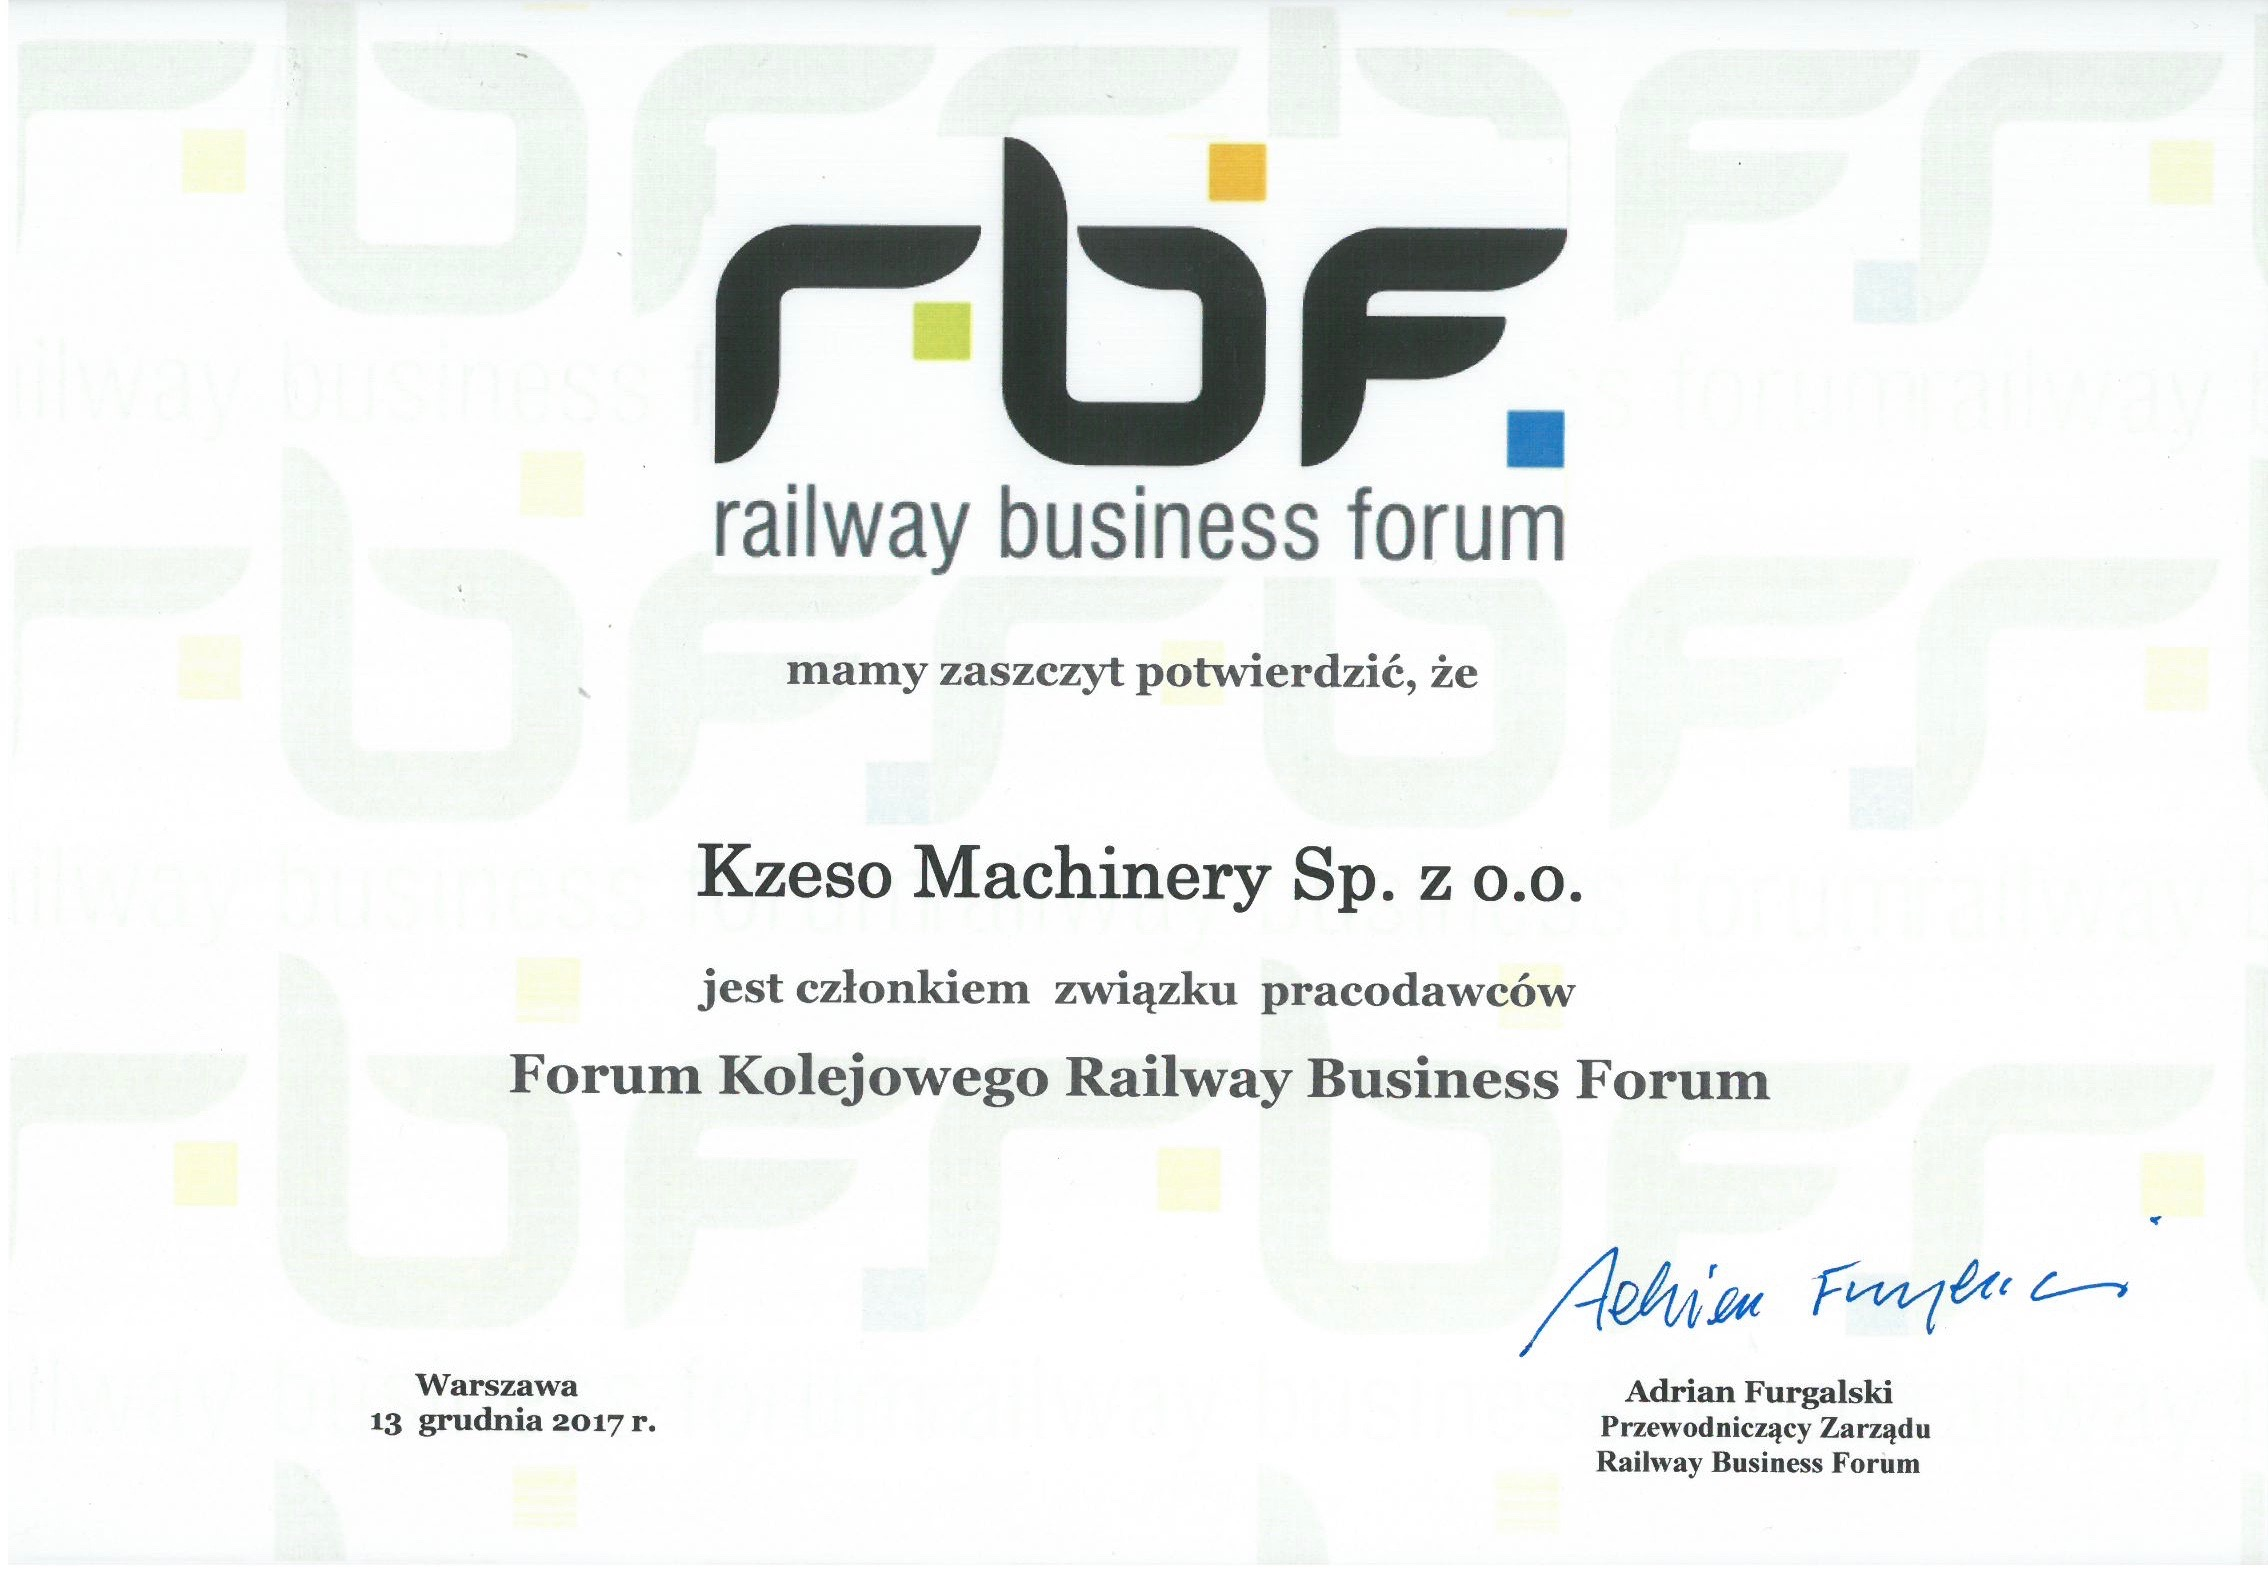 KZESO Machinery Członkiem Rail Business Forum